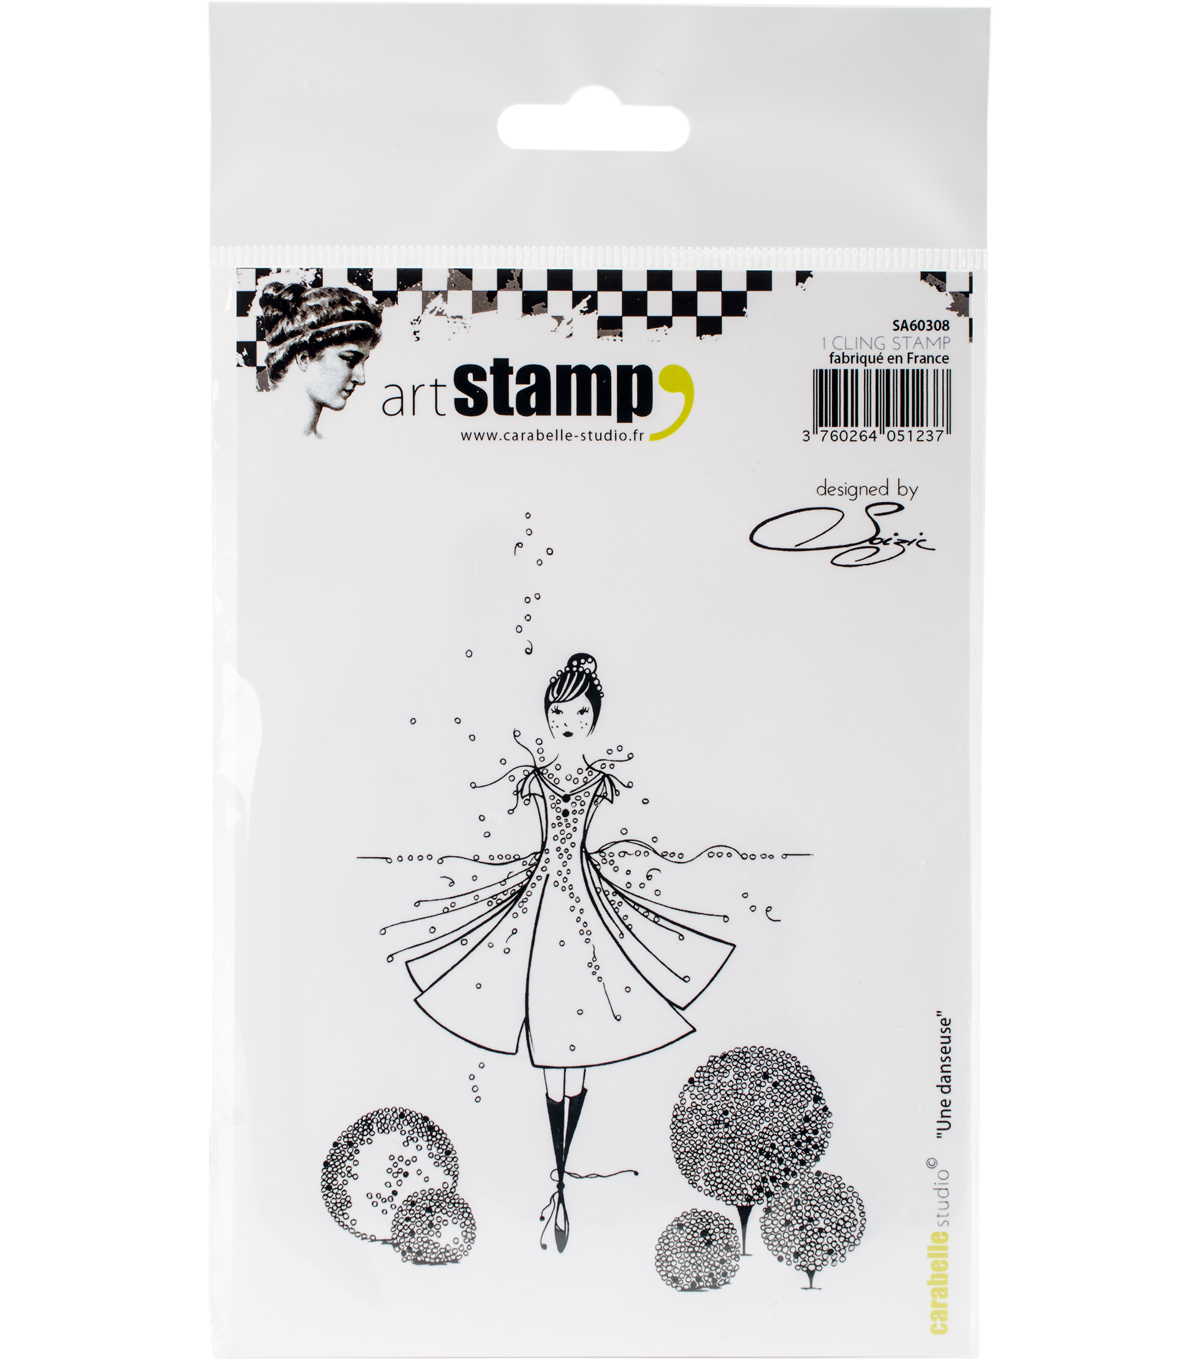 Carabelle Studio Cling Stamp A6 By Soizic-A Dancer